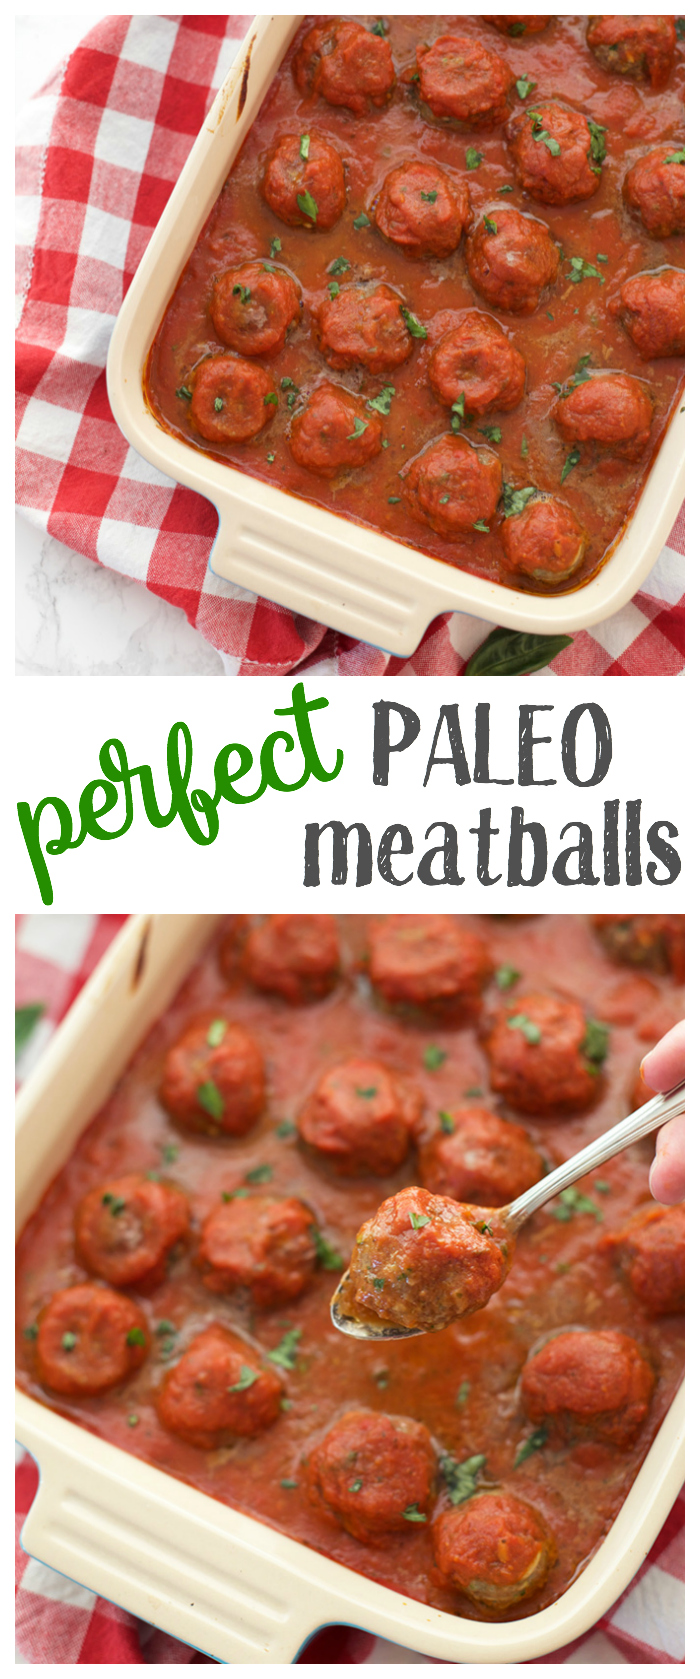 The PERFECT paleo meatball. Tender, light, and full of flavor without any fillers or additives. You'll love these!